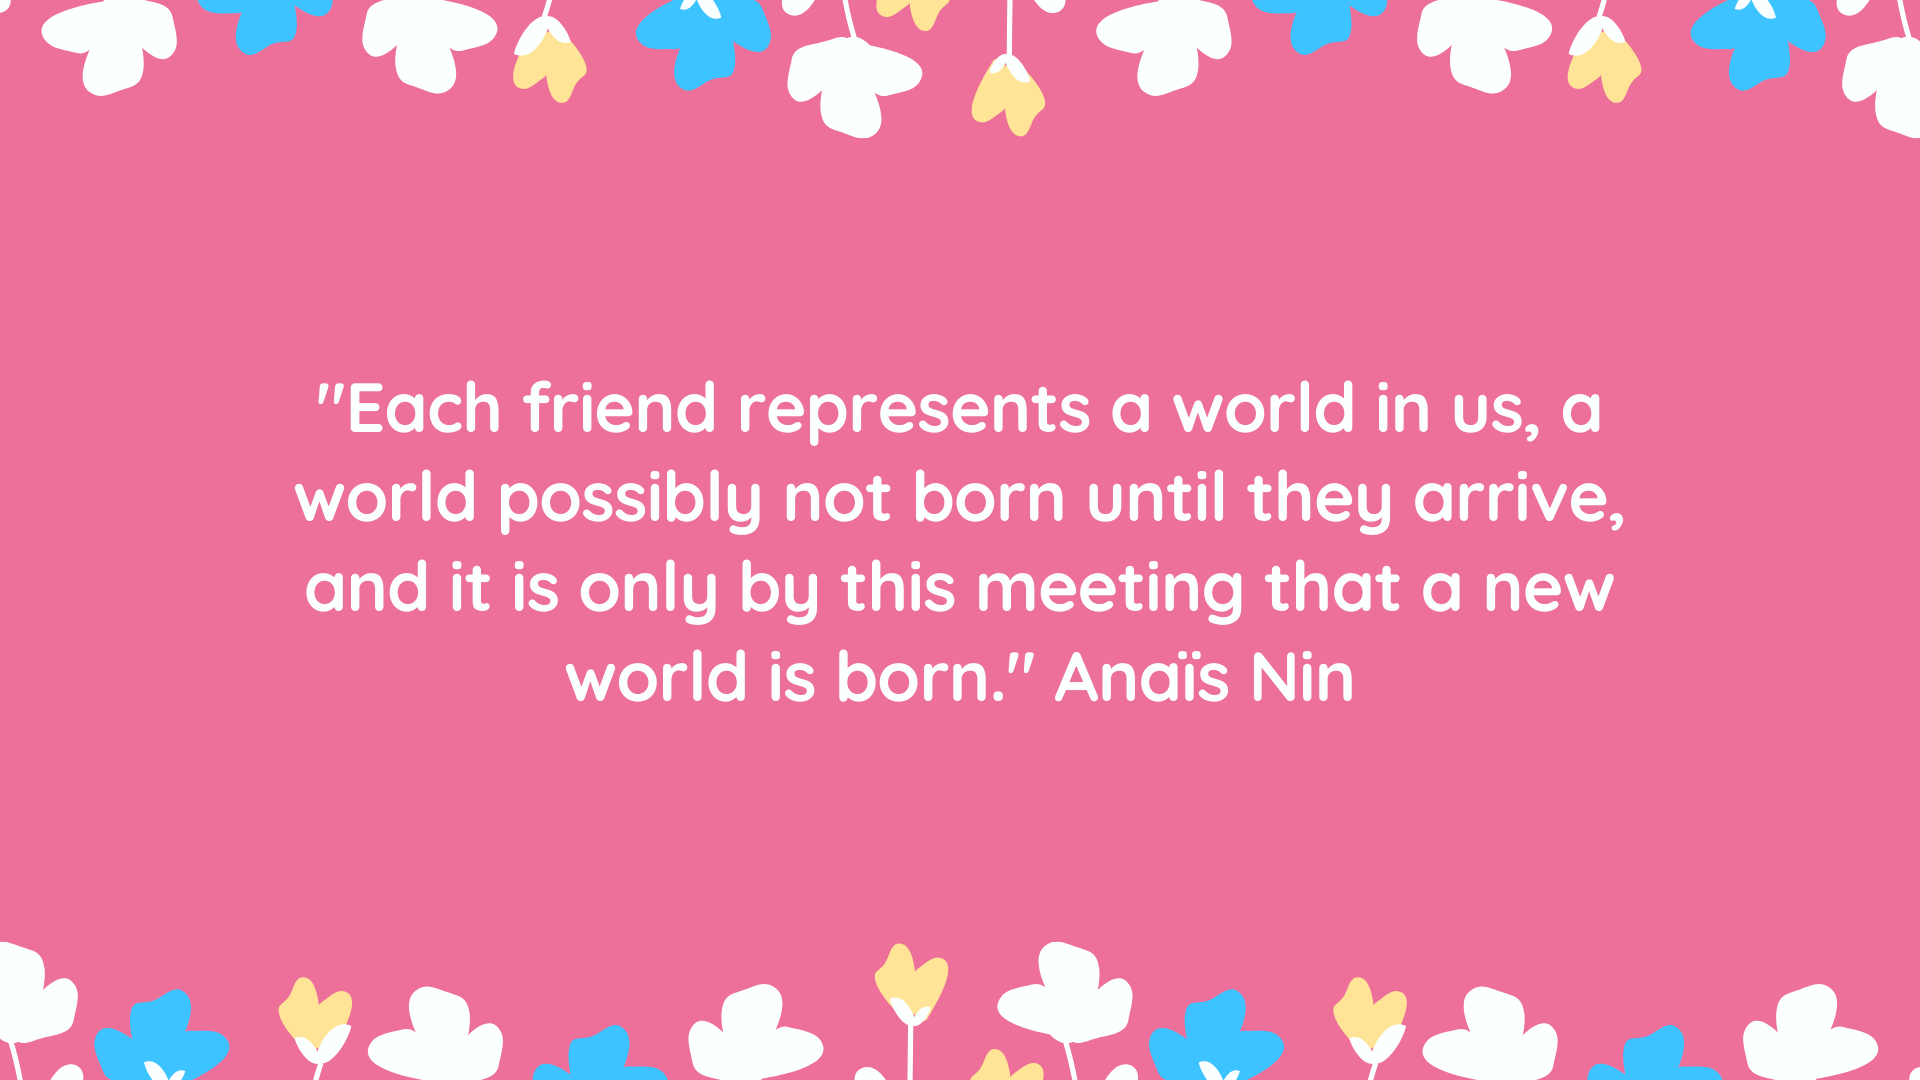 """Each friend represents a world in us, a world possibly not born until they arrive, and it is only by this meeting that a new world is born."" Anaïs Nin"